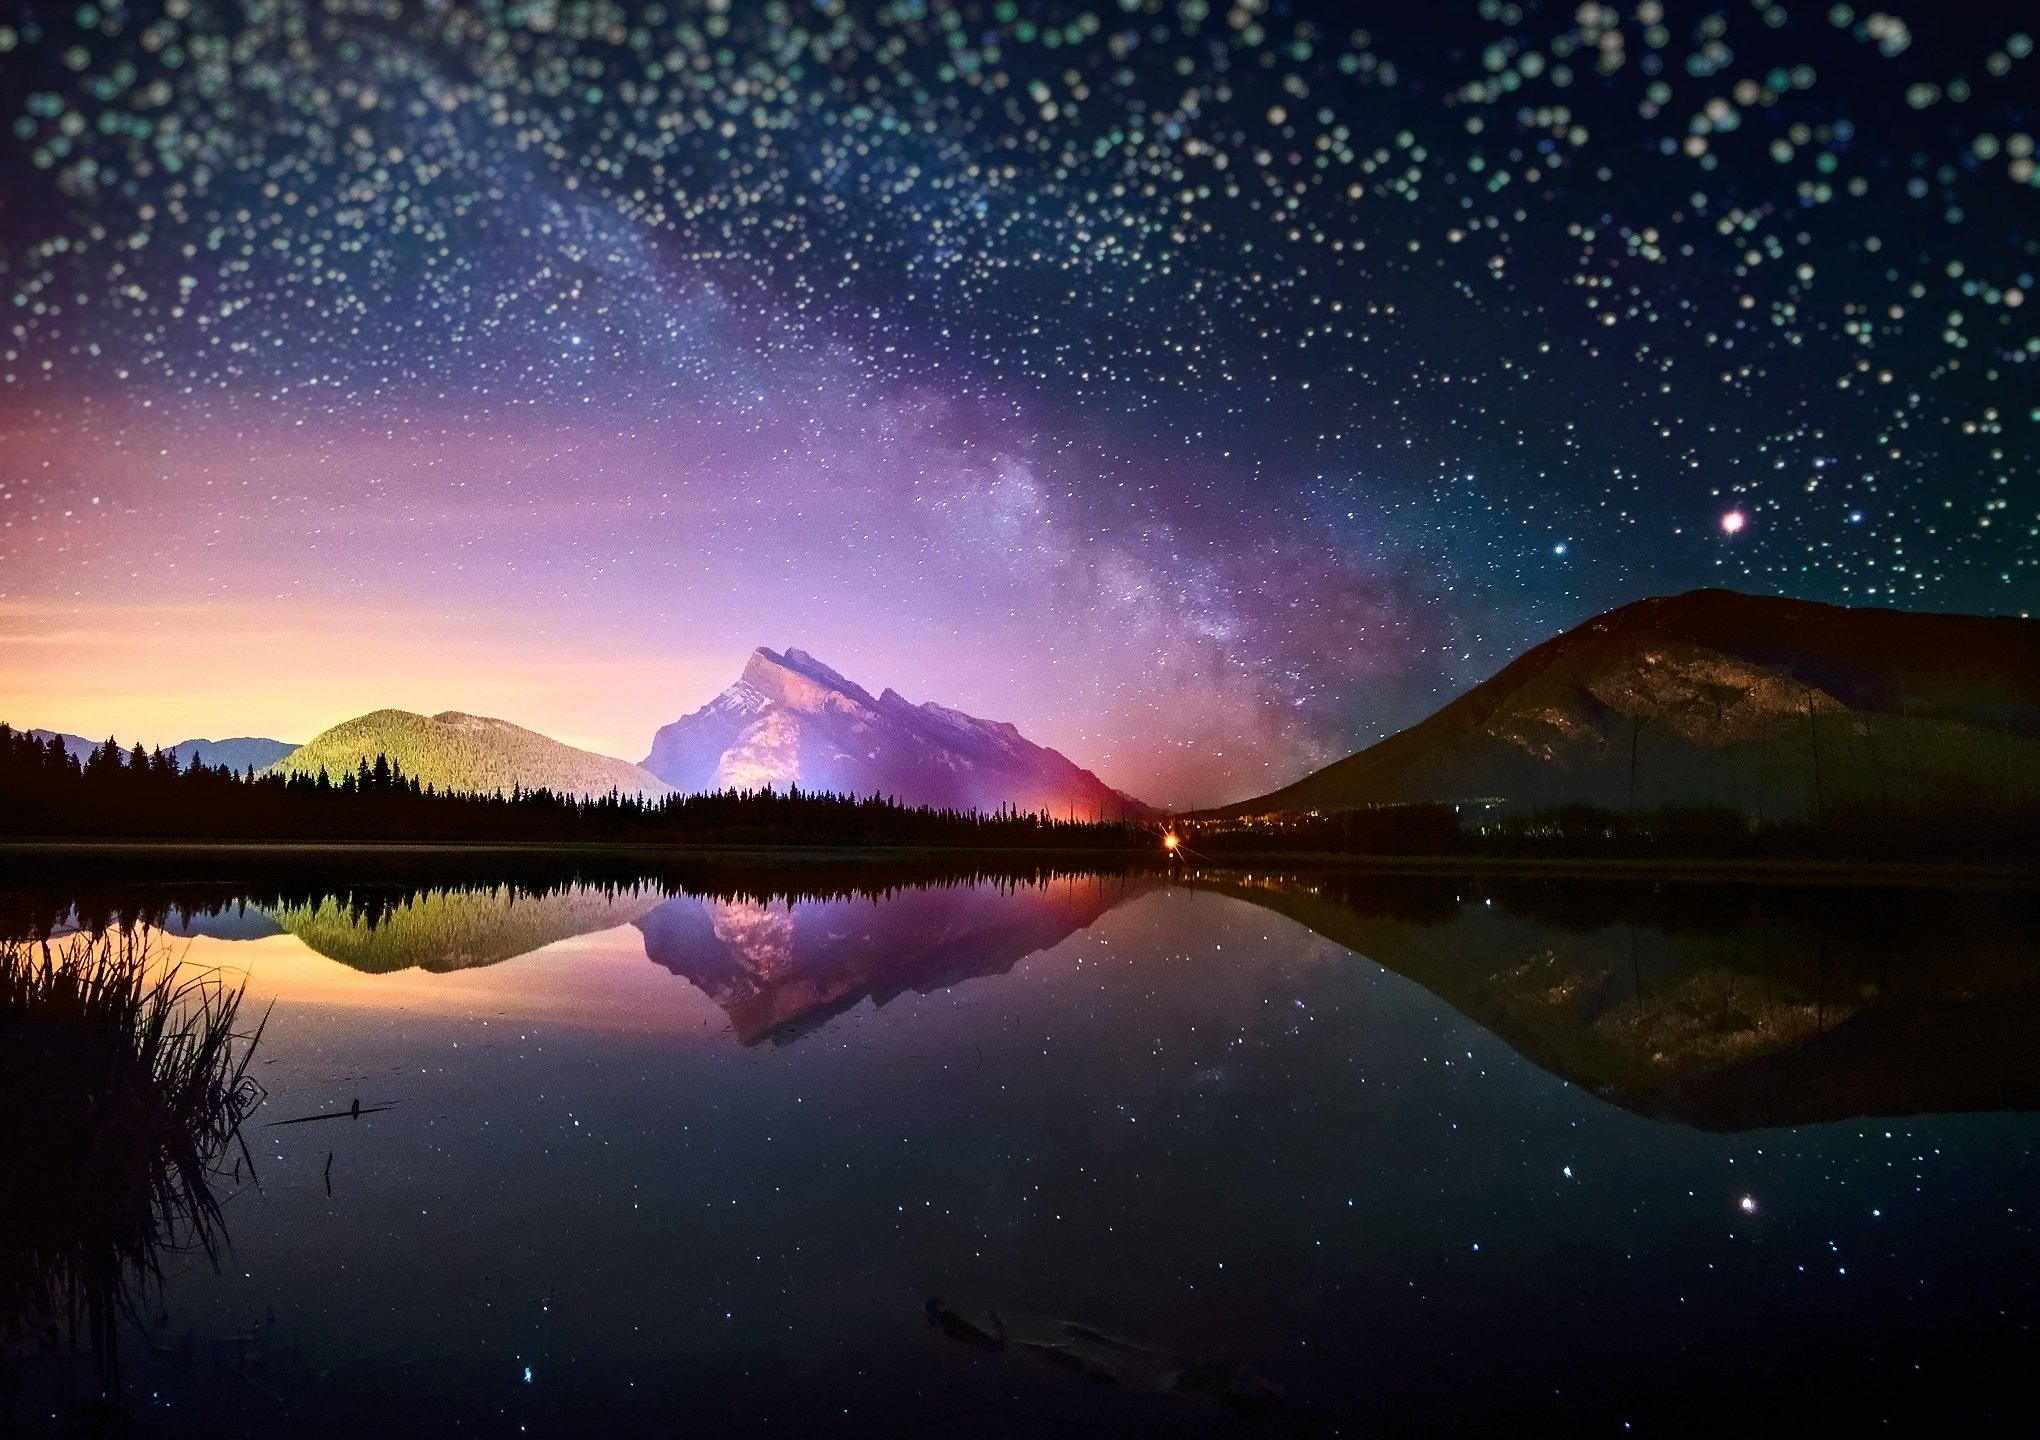 357 starry sky hd wallpapers | background images - wallpaper abyss